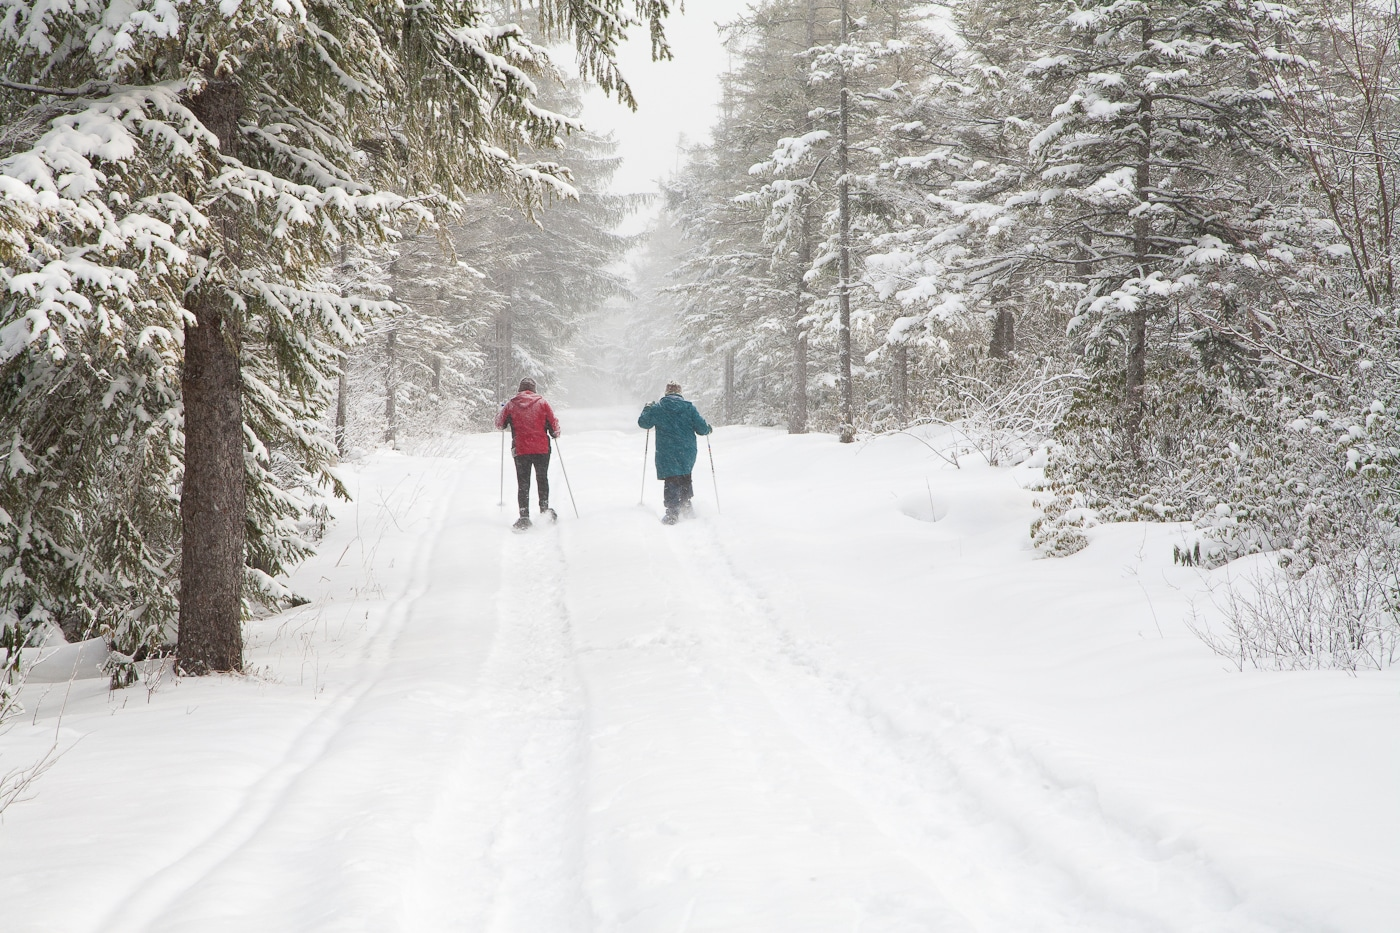 two cross country skiers going down a trail